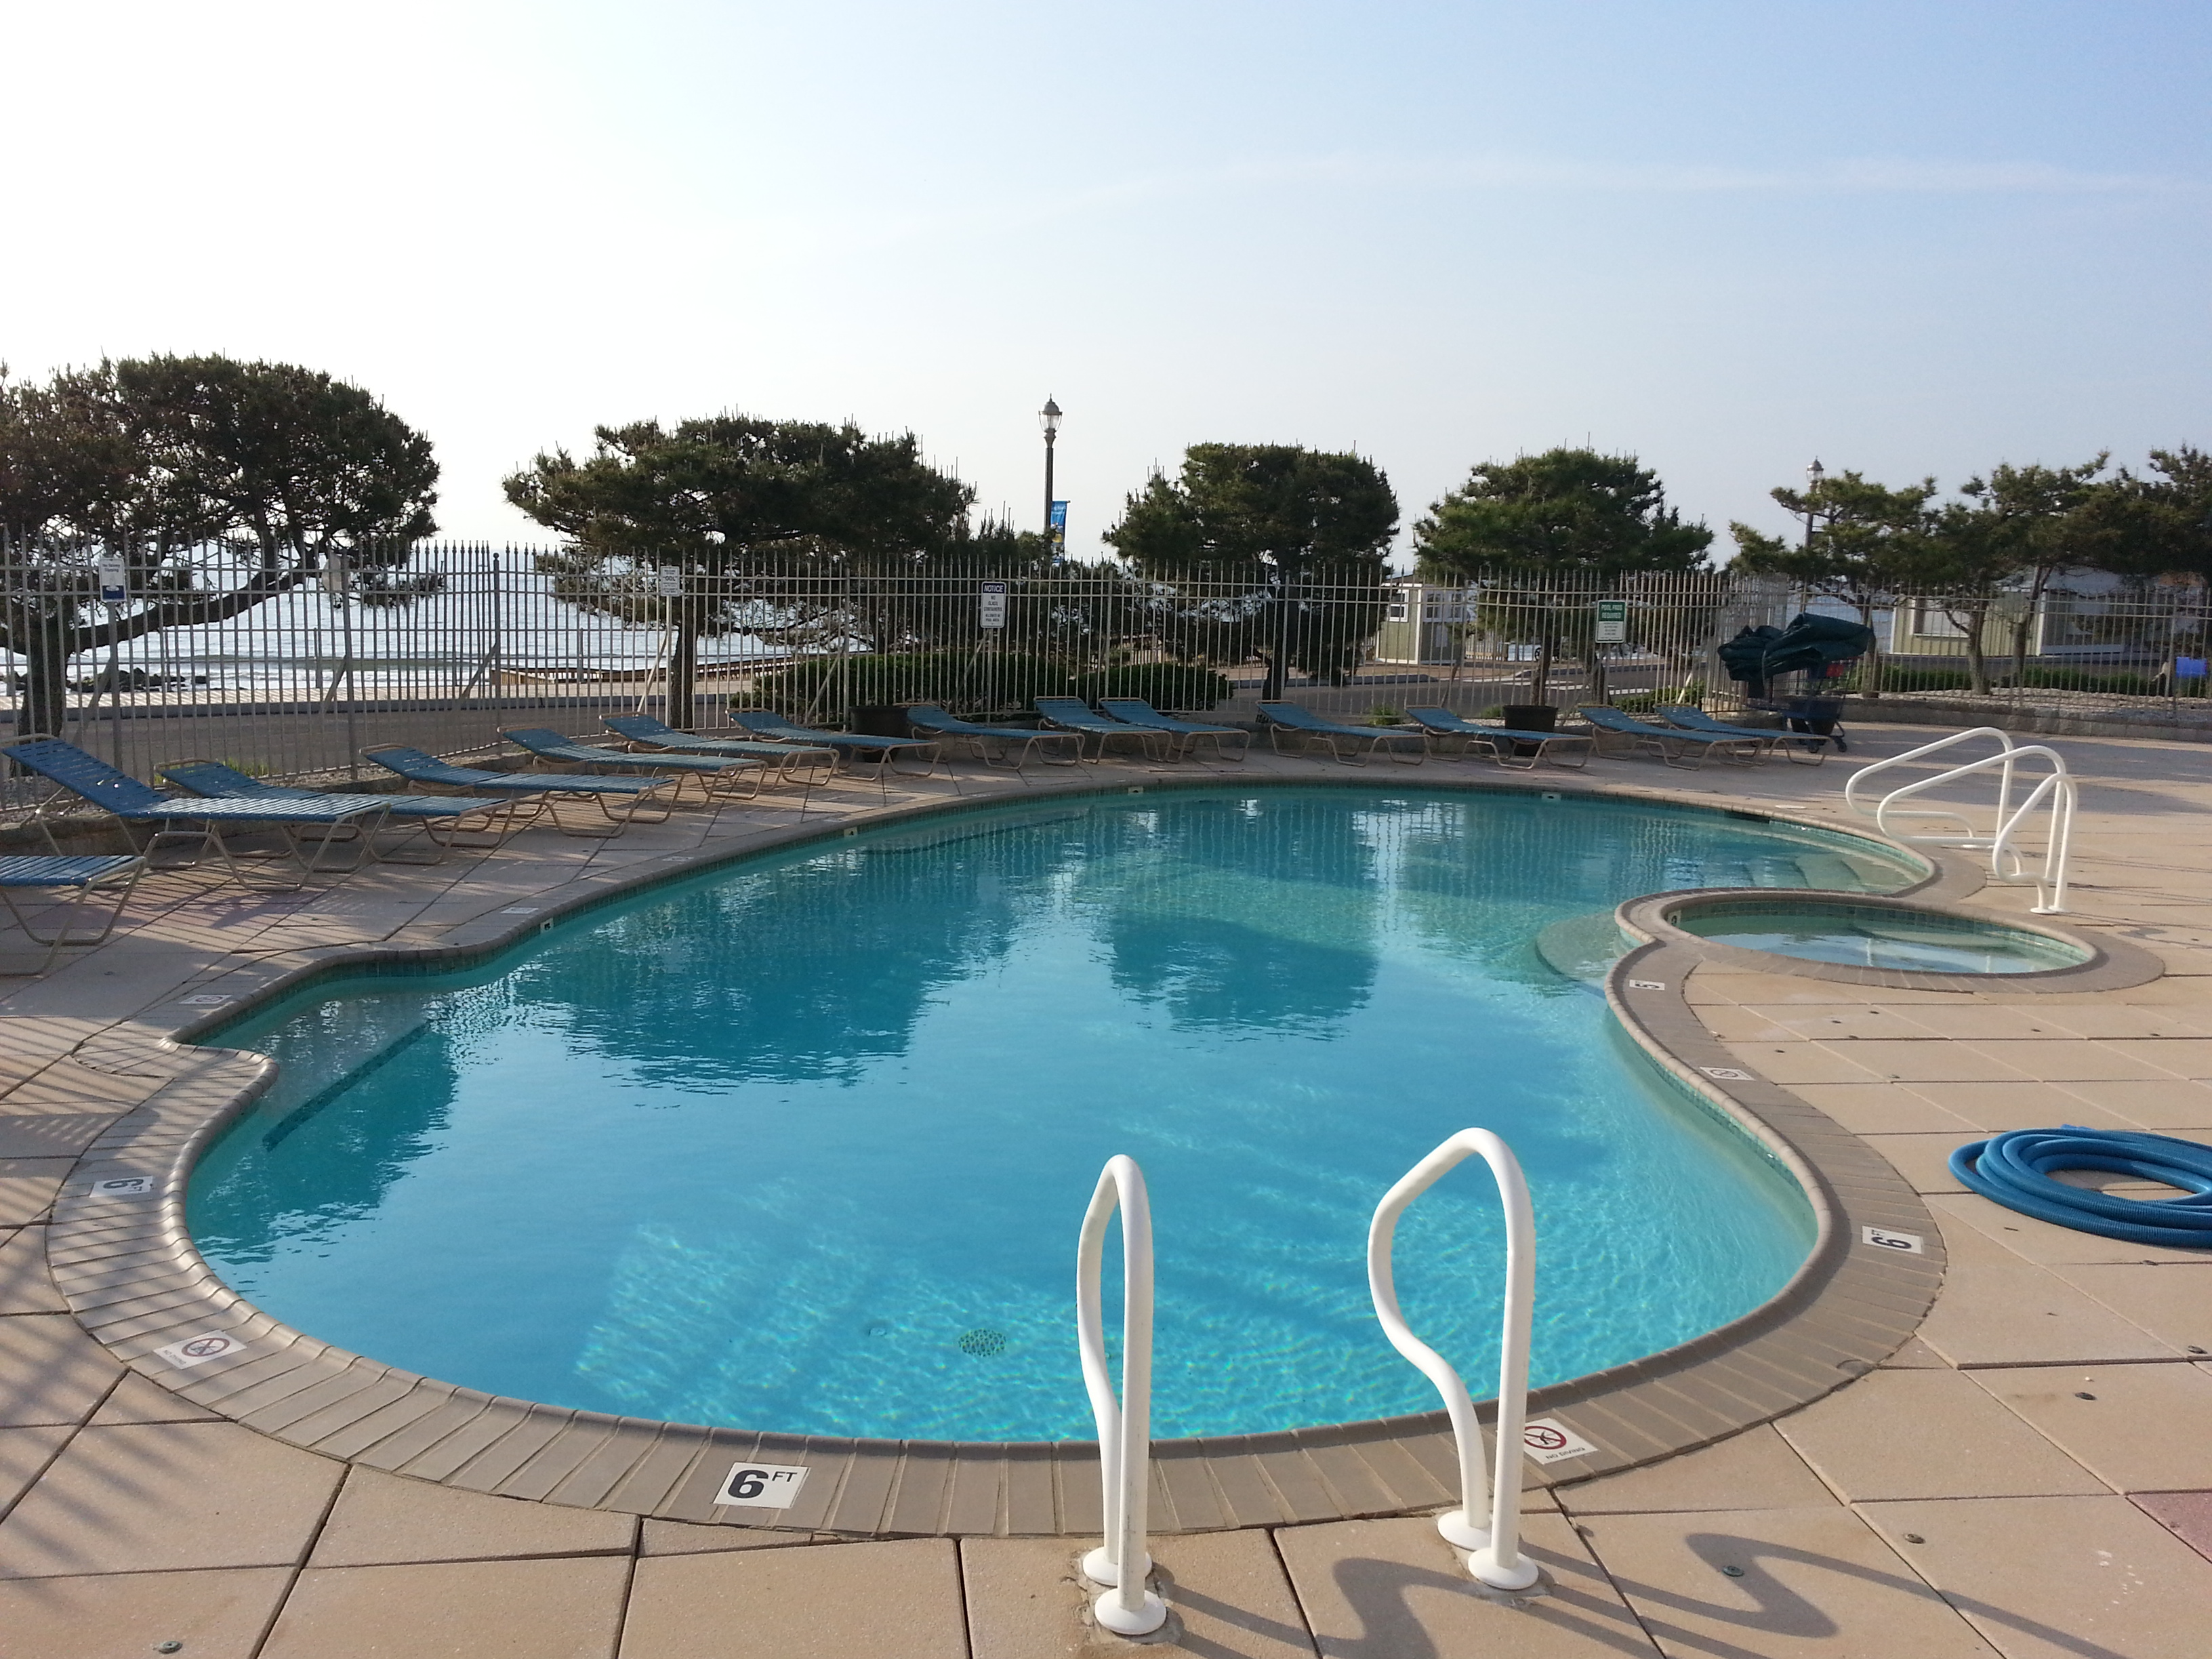 At the east end of the building overlooking the ocean, Ocean Plaza has a beautiful heated pool.